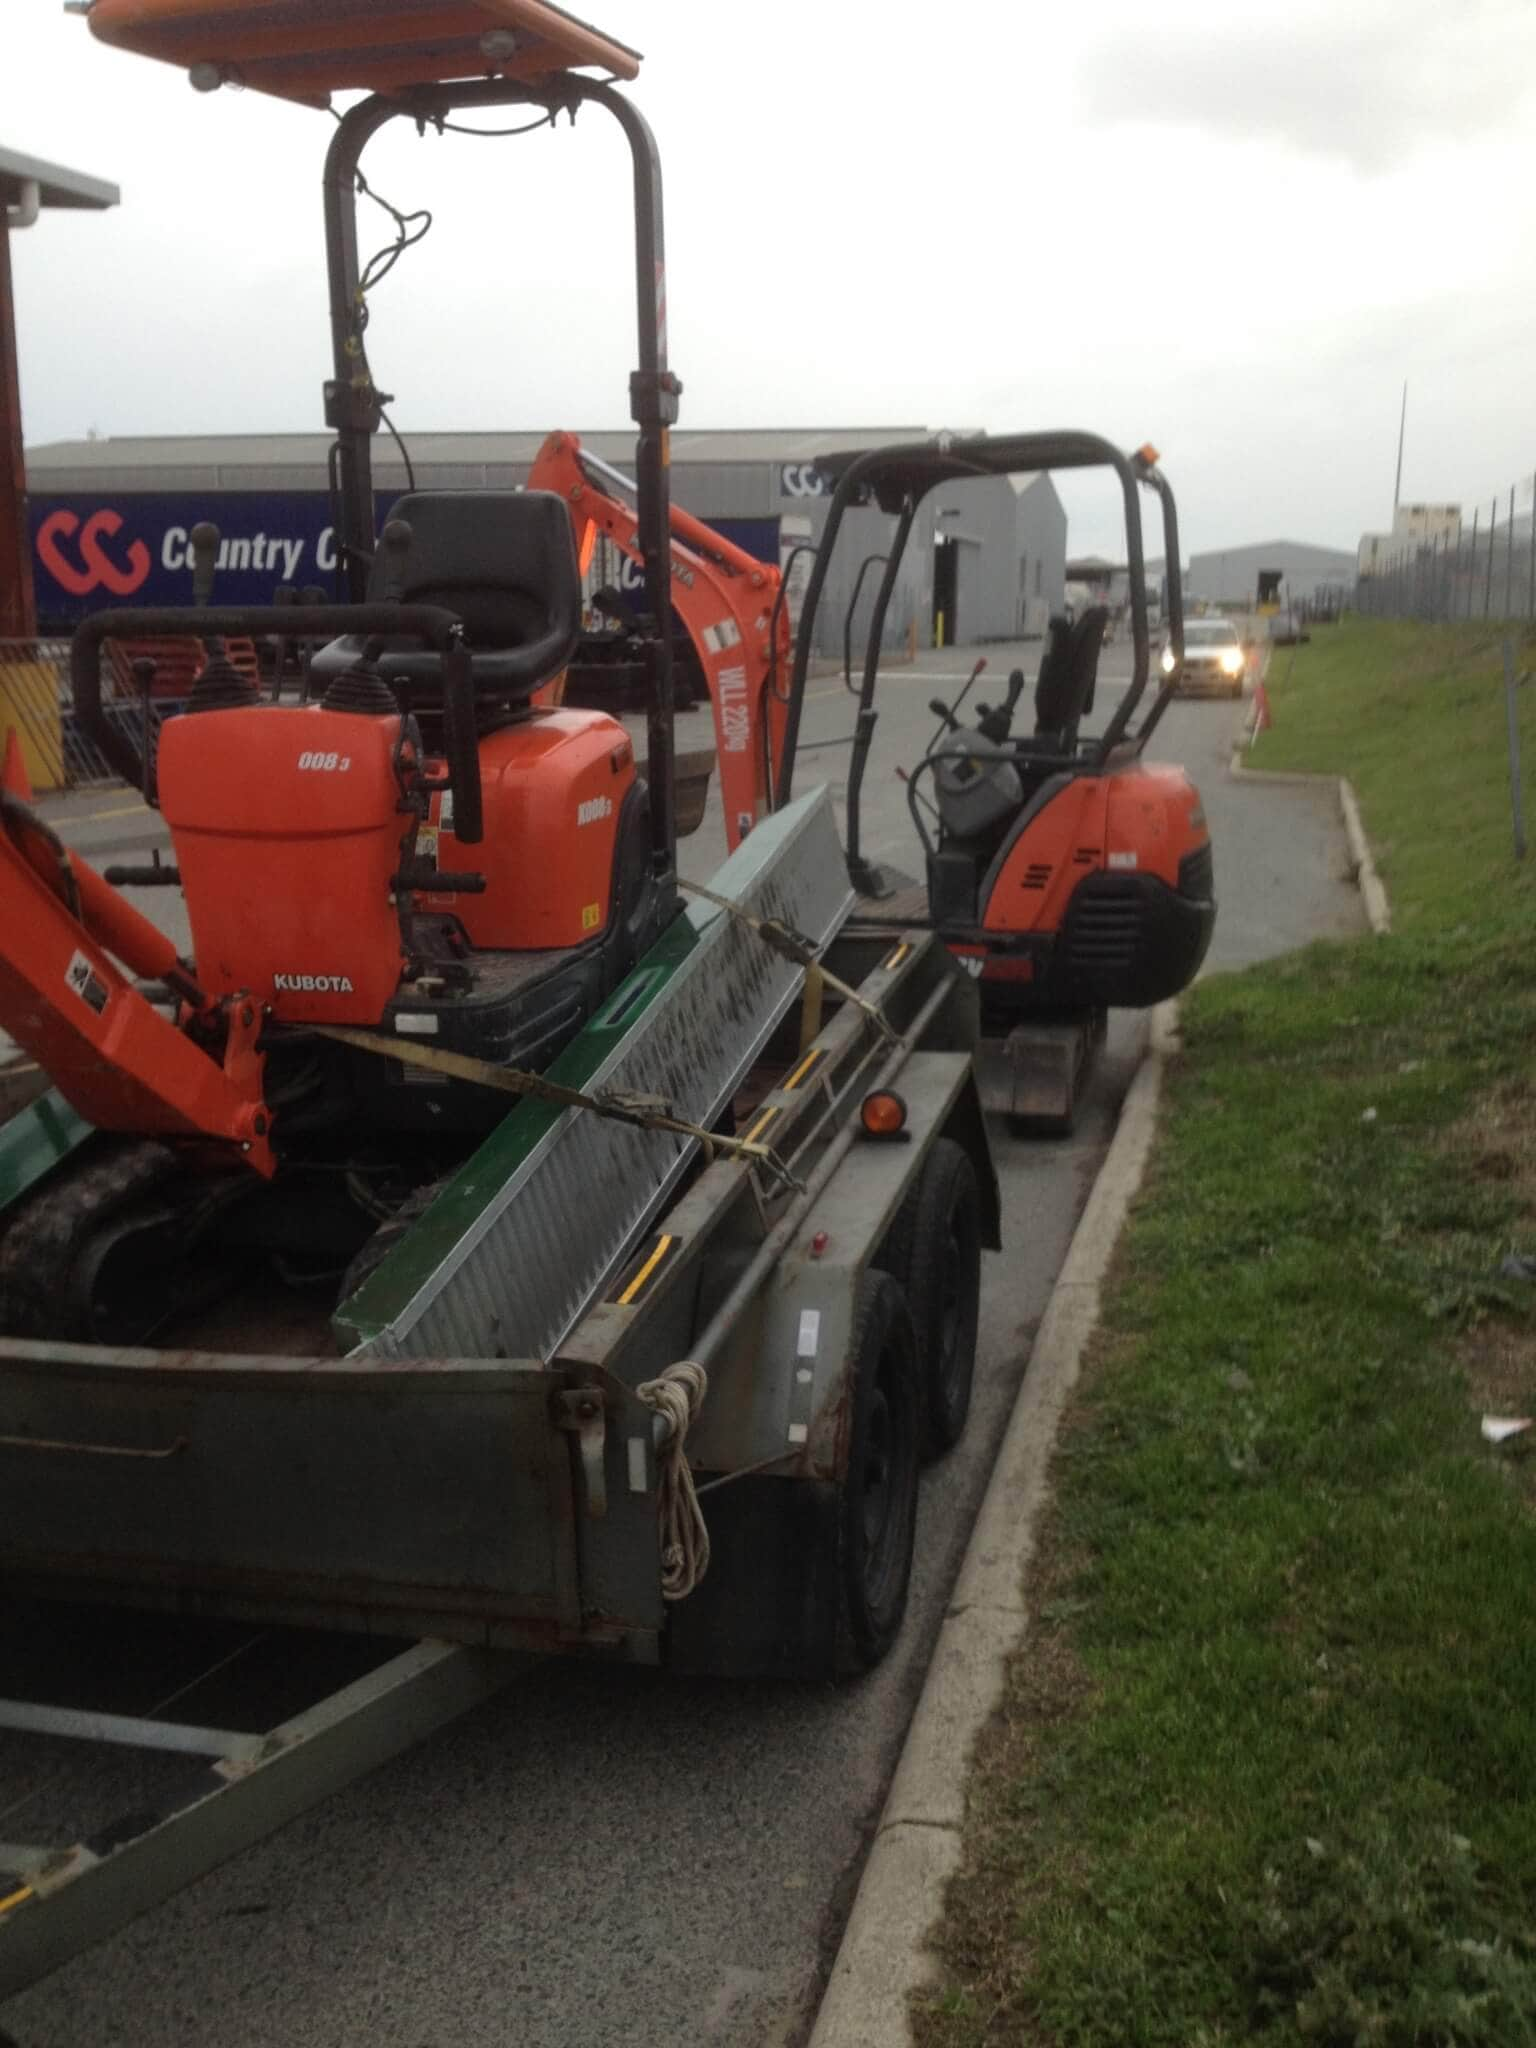 Everyday Plumbers Residential New Leach Drain Backfilling - Heavy Equipment in Service 2180-1